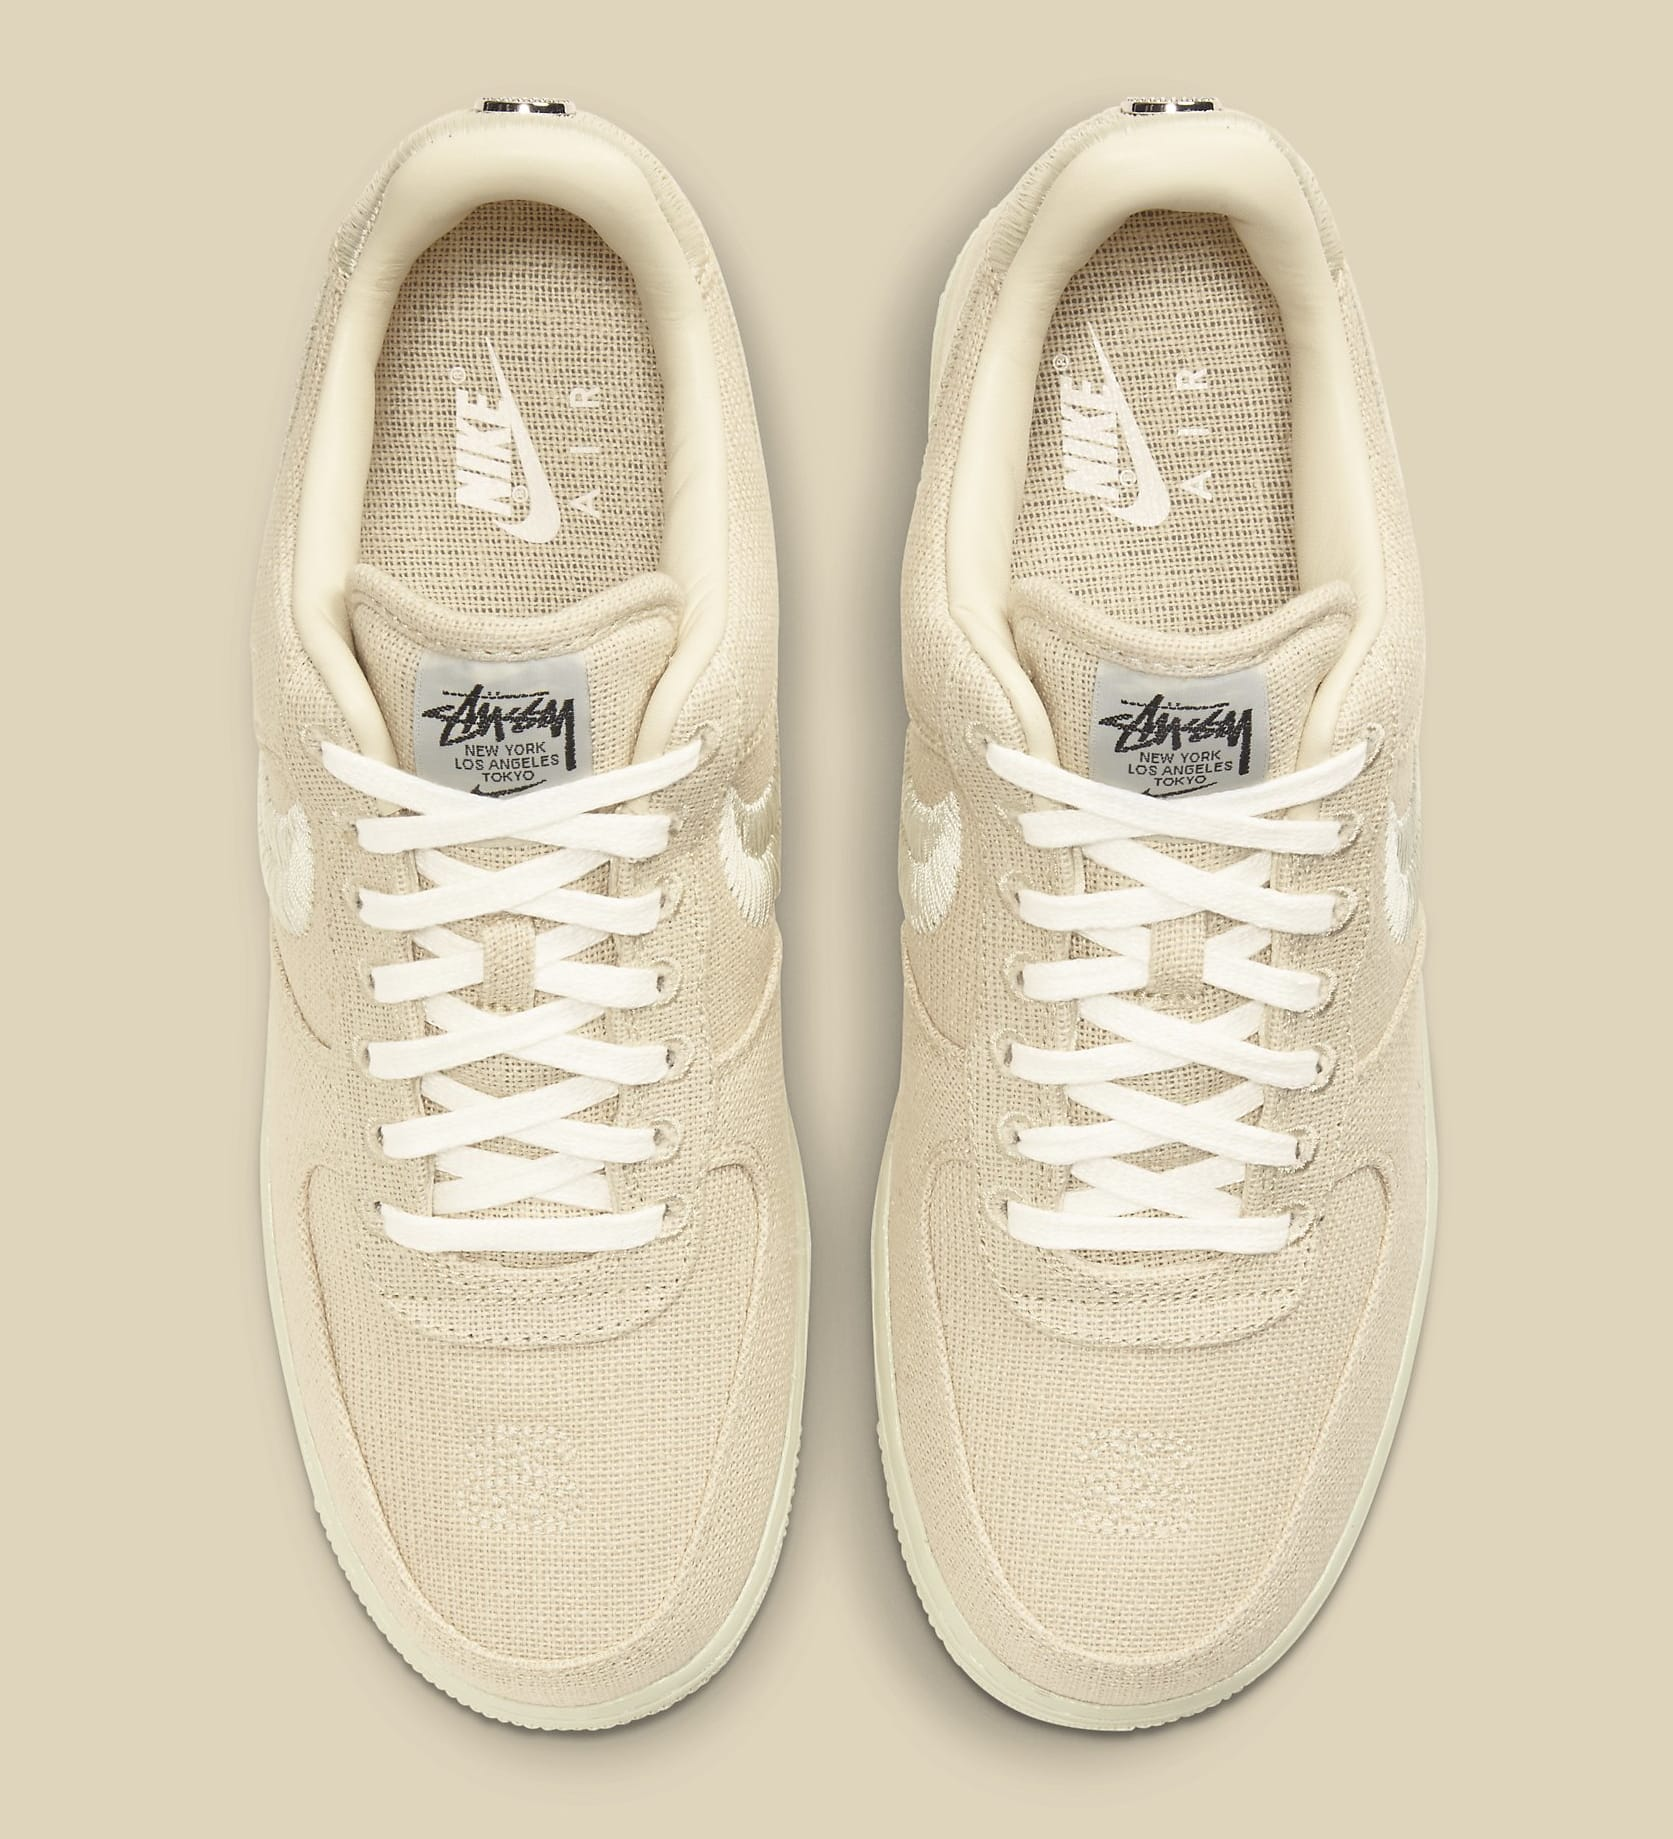 Stussy x Nike Air Force 1 Low 'Fossil Stone' CZ9084-200 Top